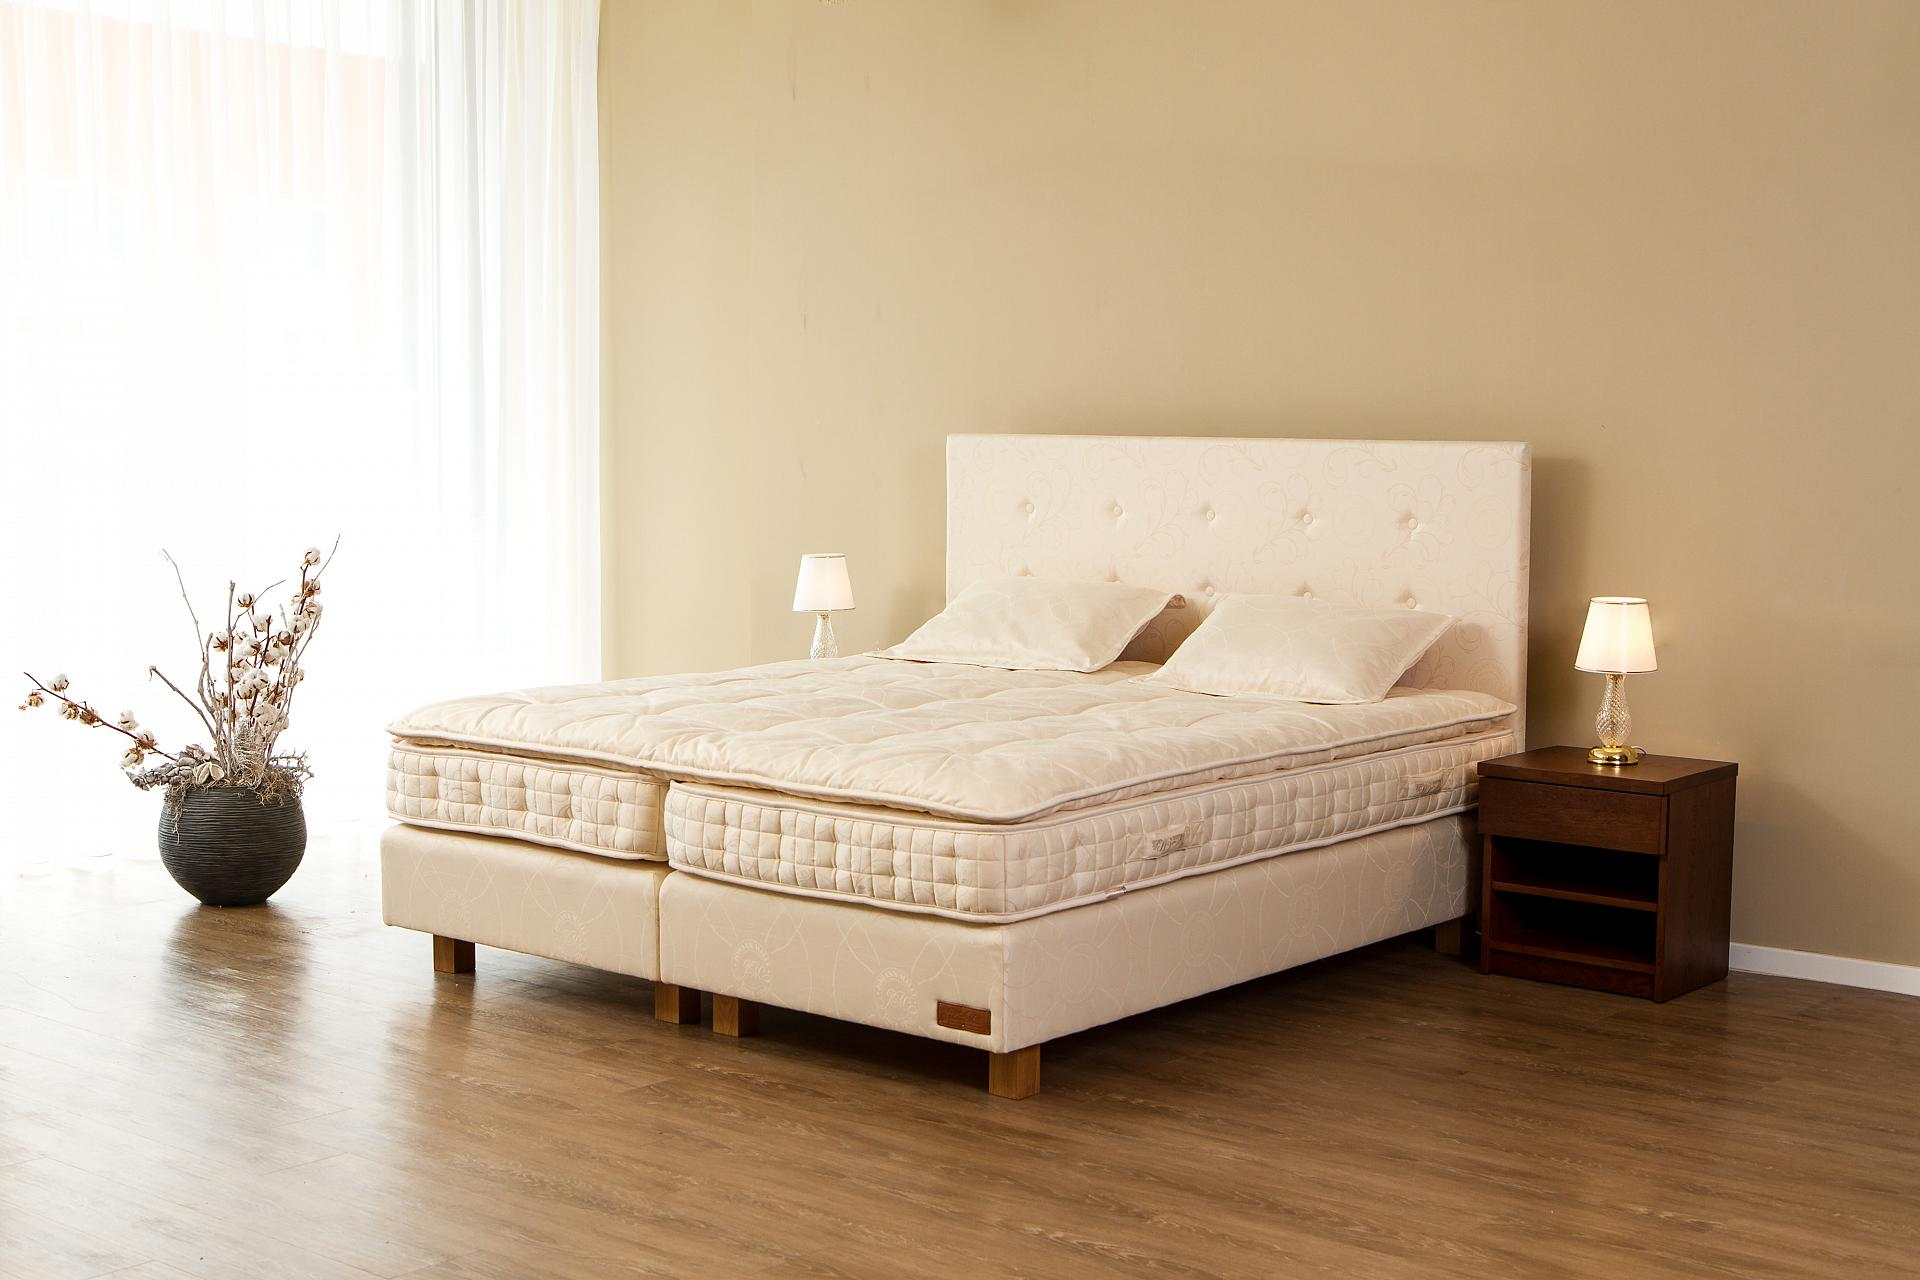 Bed Lacerta II